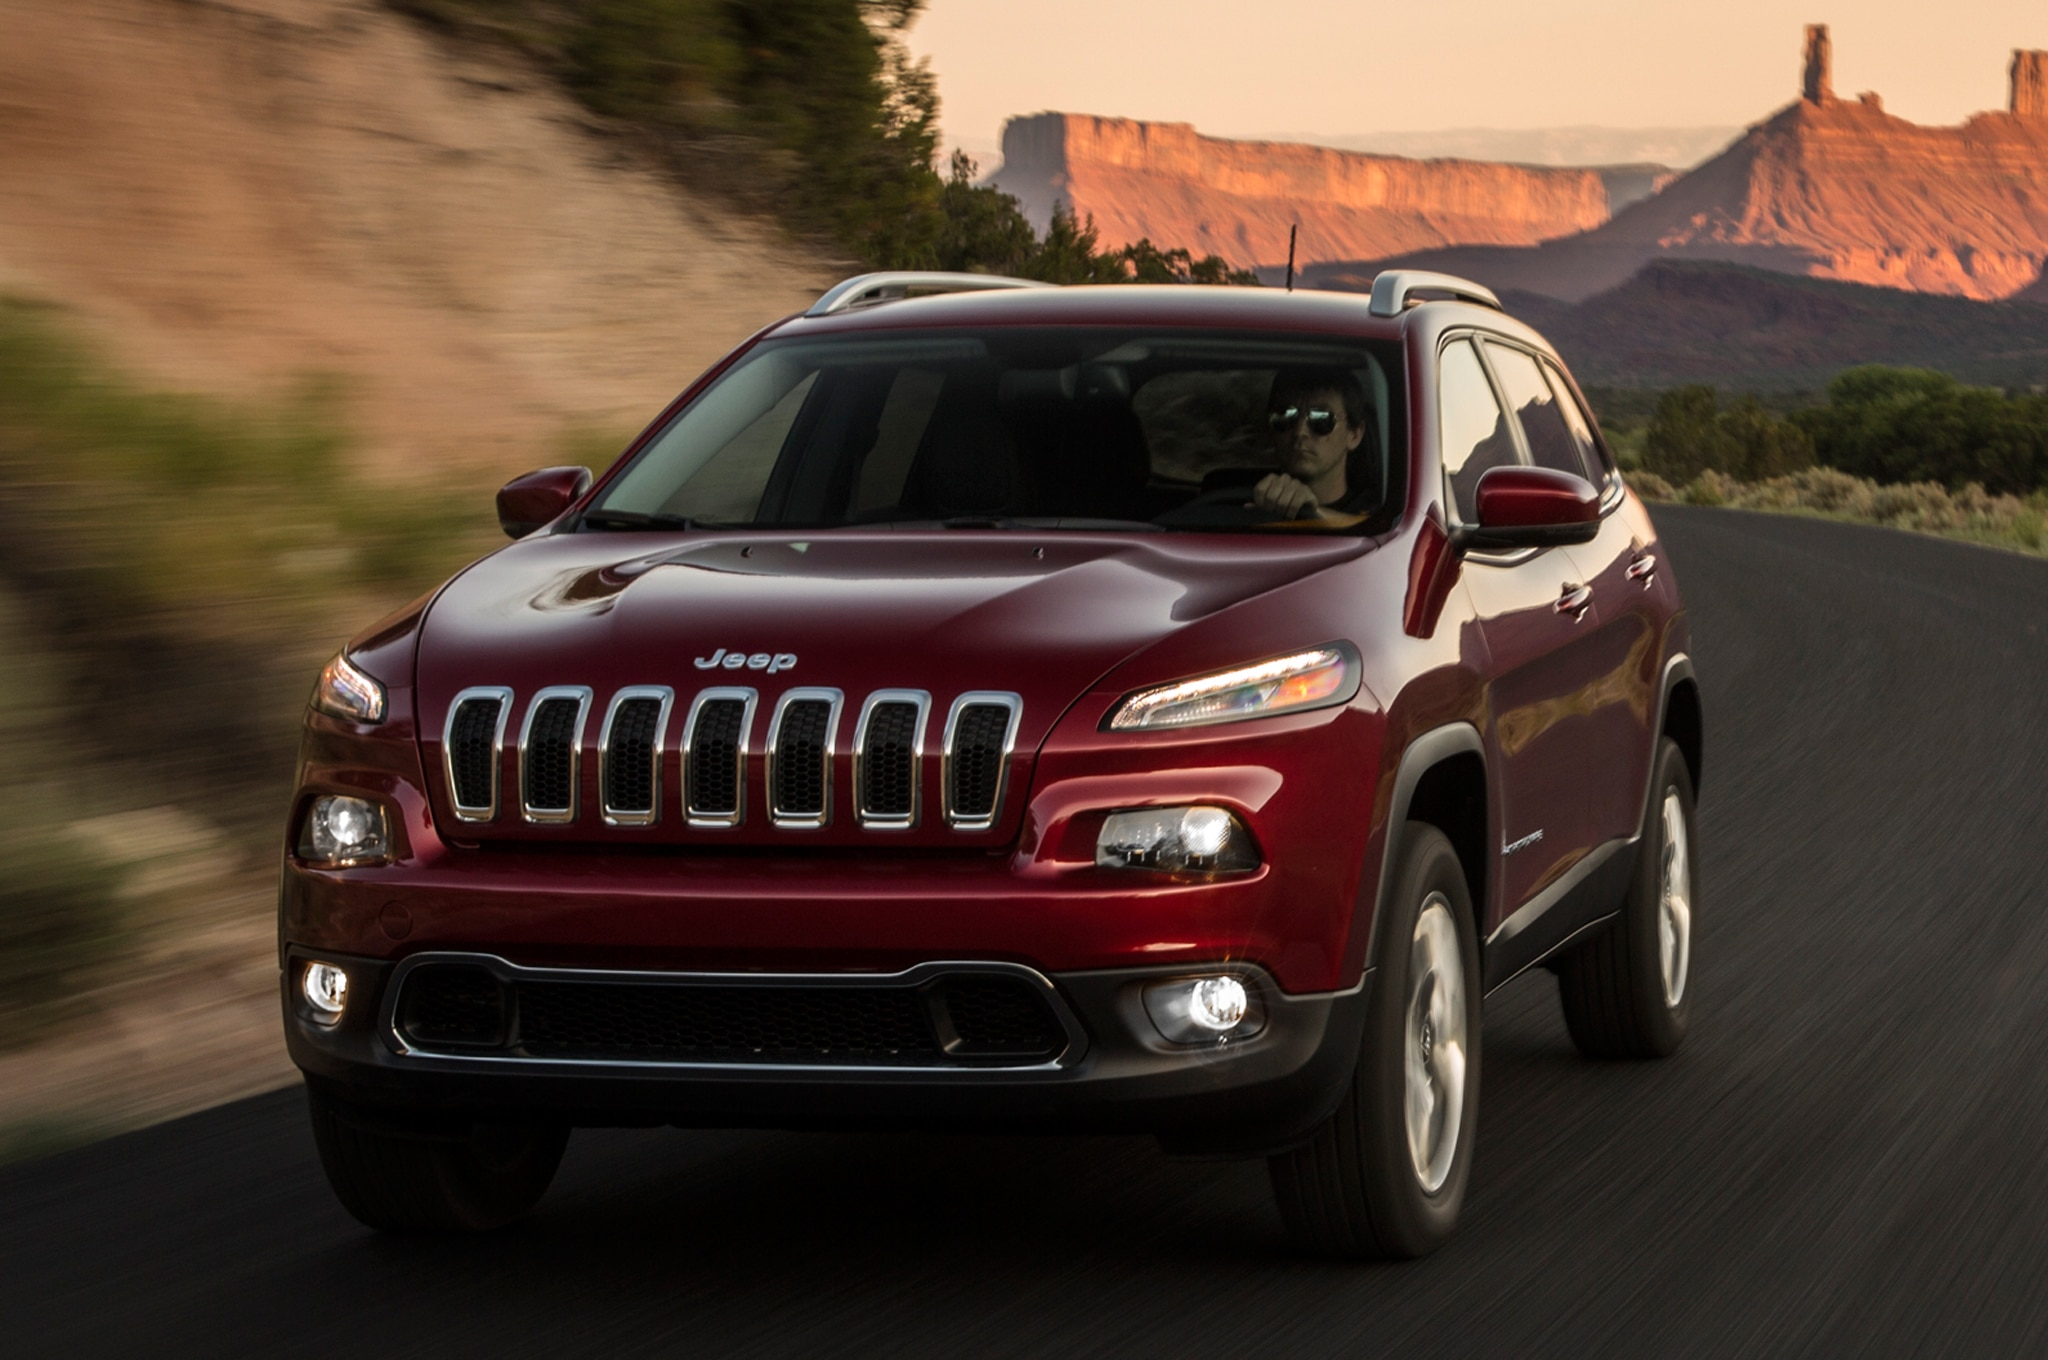 2014 Jeep Cherokee: Around The Block